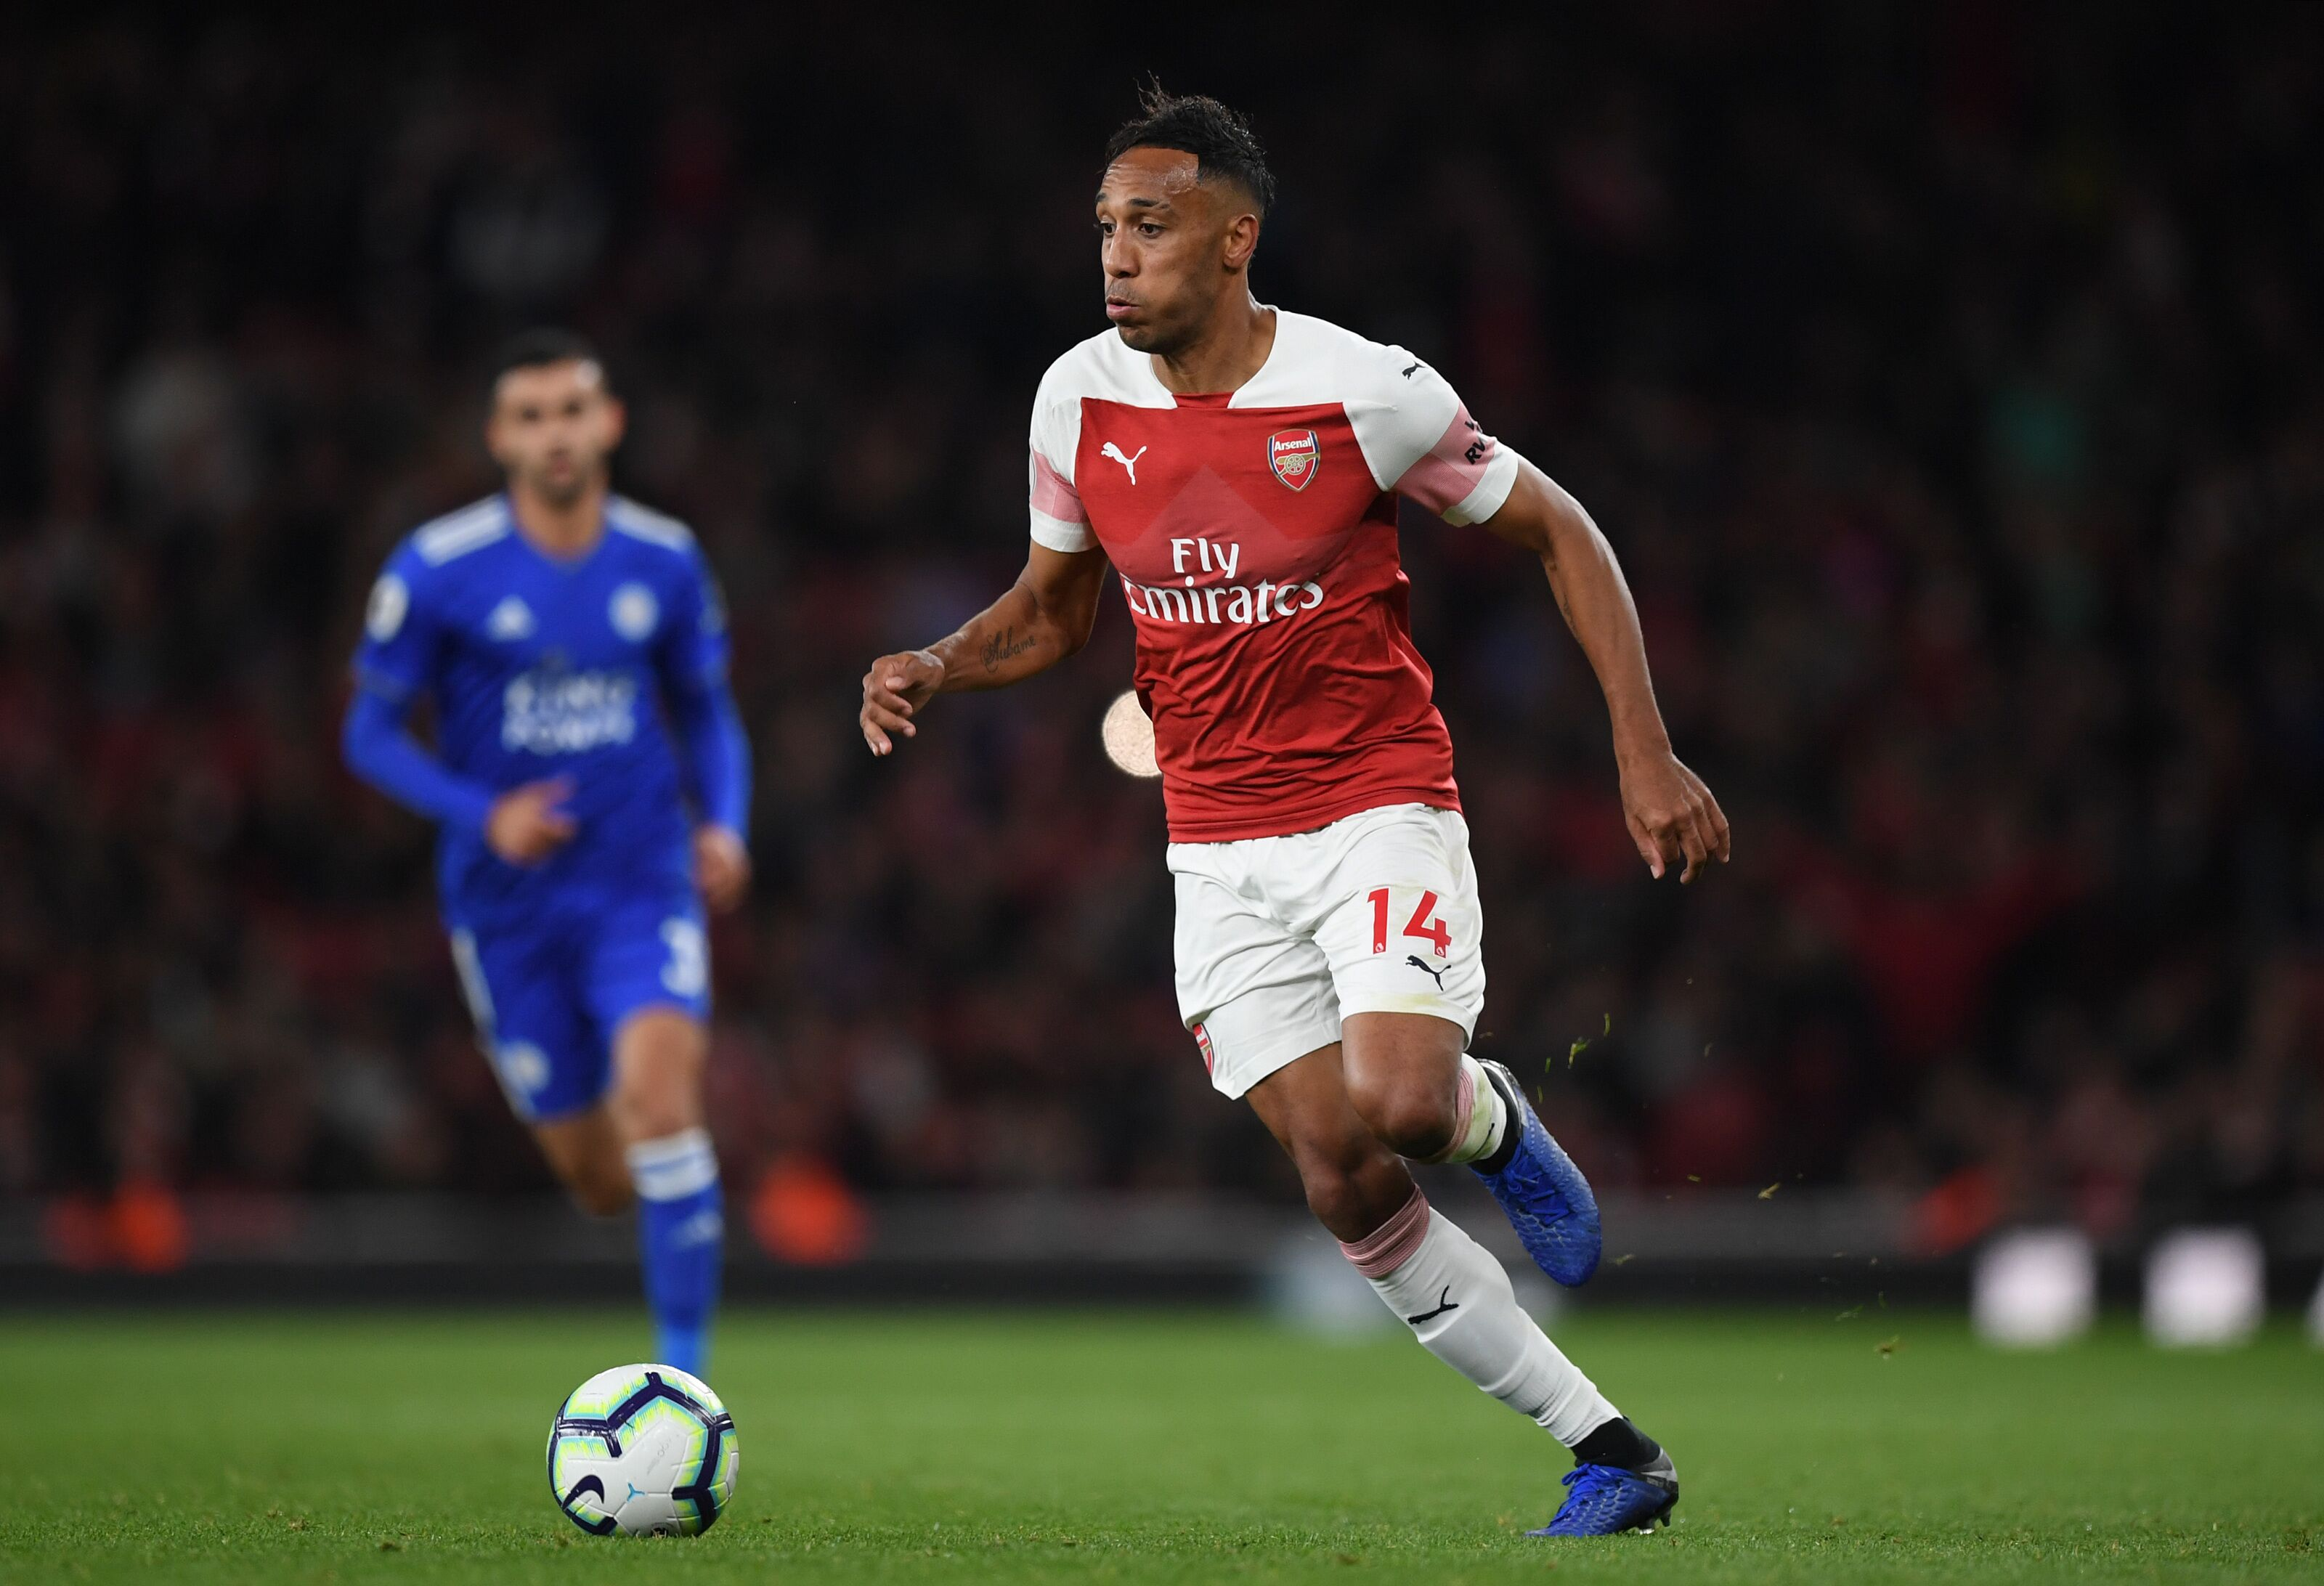 Arsenal: Pierre-Emerick Aubameyang creating his own paradox